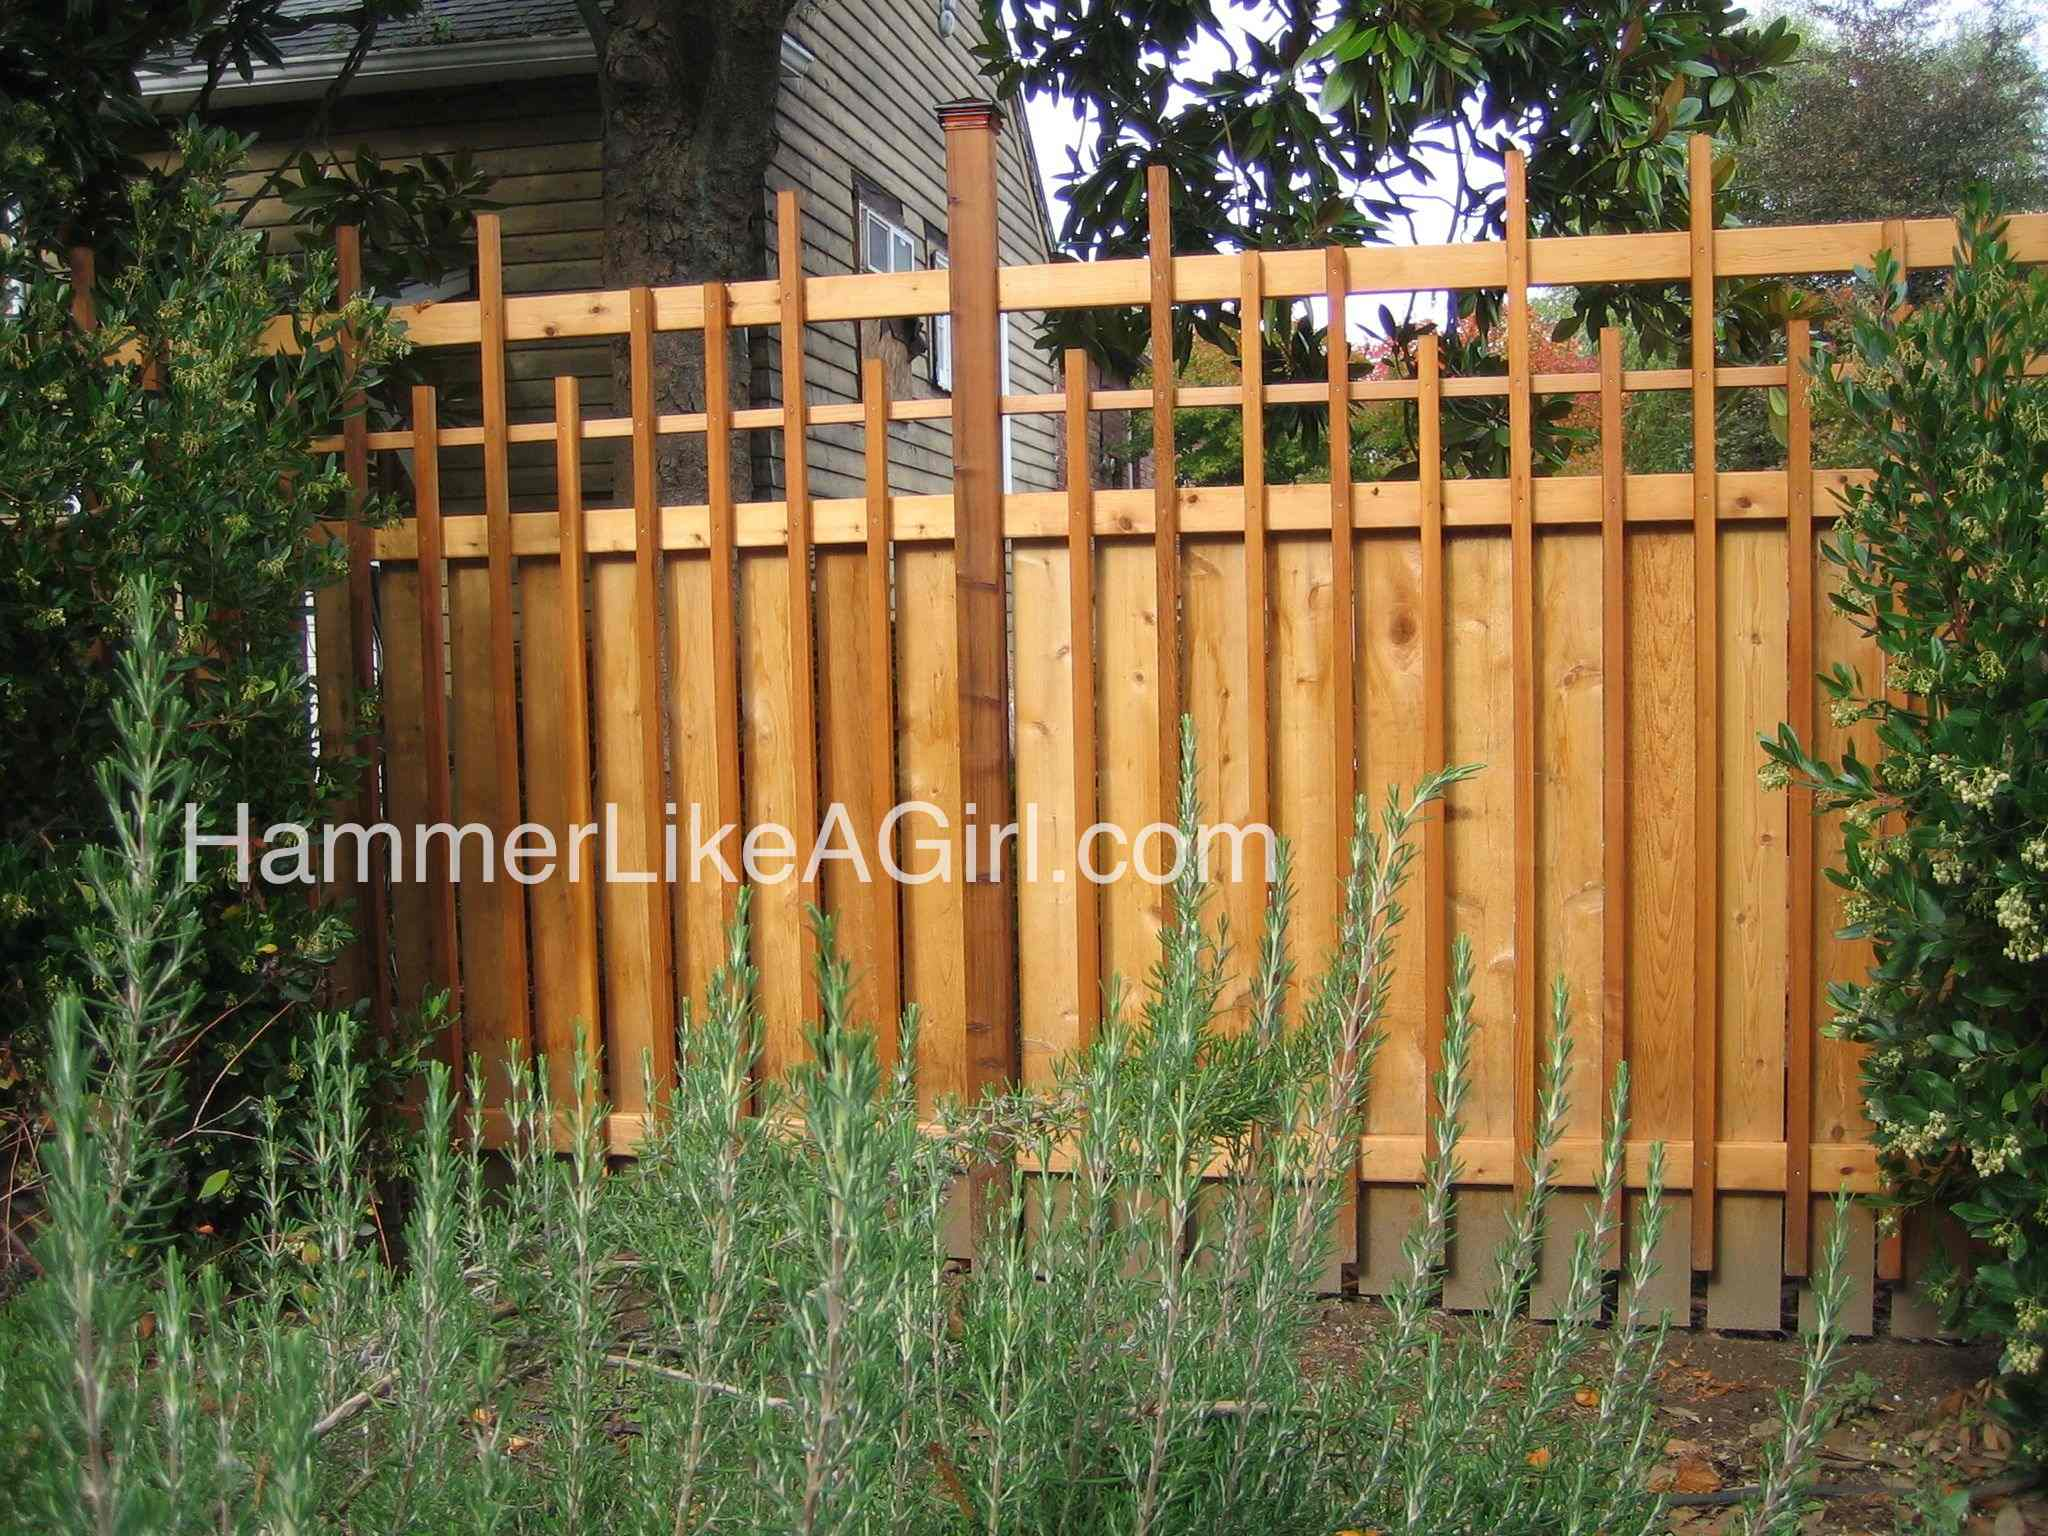 backyard fence was intended to create more privacy than the front yard